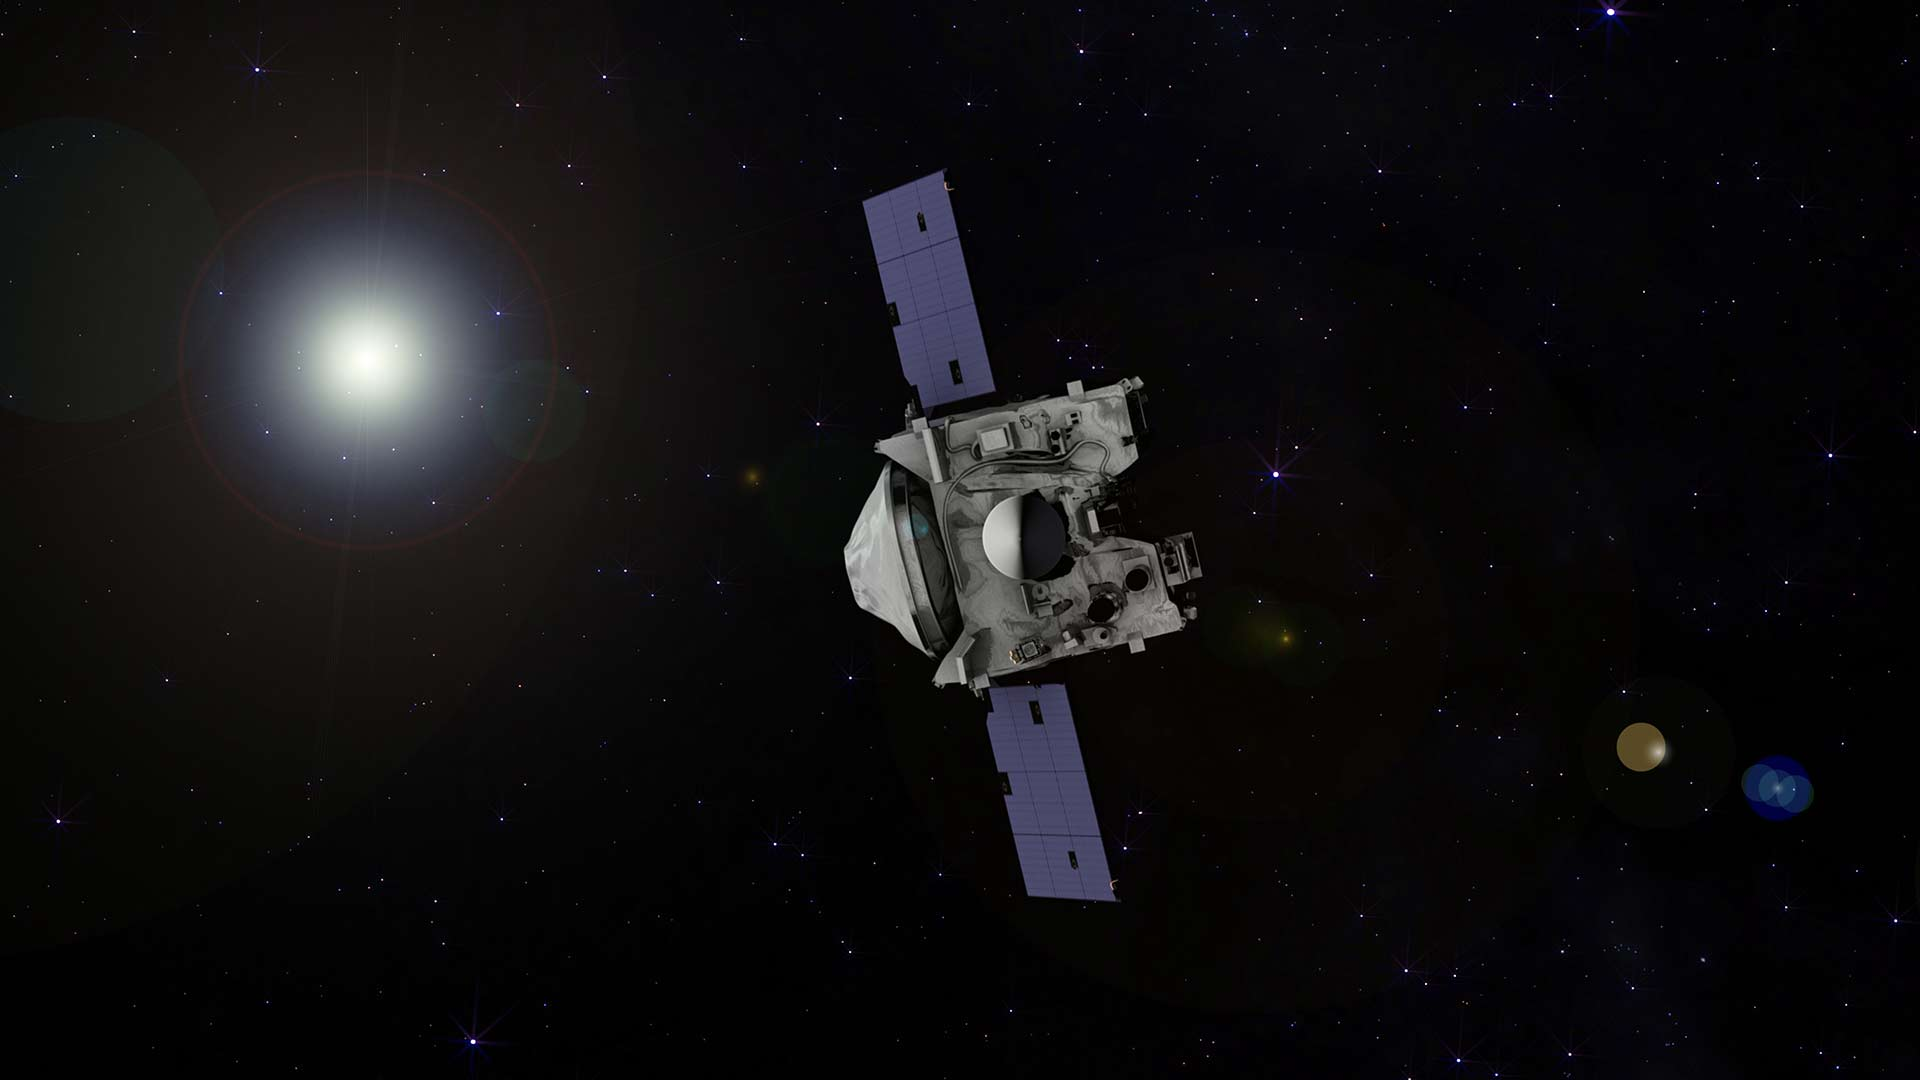 An illustration of the OSIRIS-REx spacecraft. Image courtesy [OSIRIS-REx Asteroid Sample Return Mission](https://www.asteroidmission.org/).